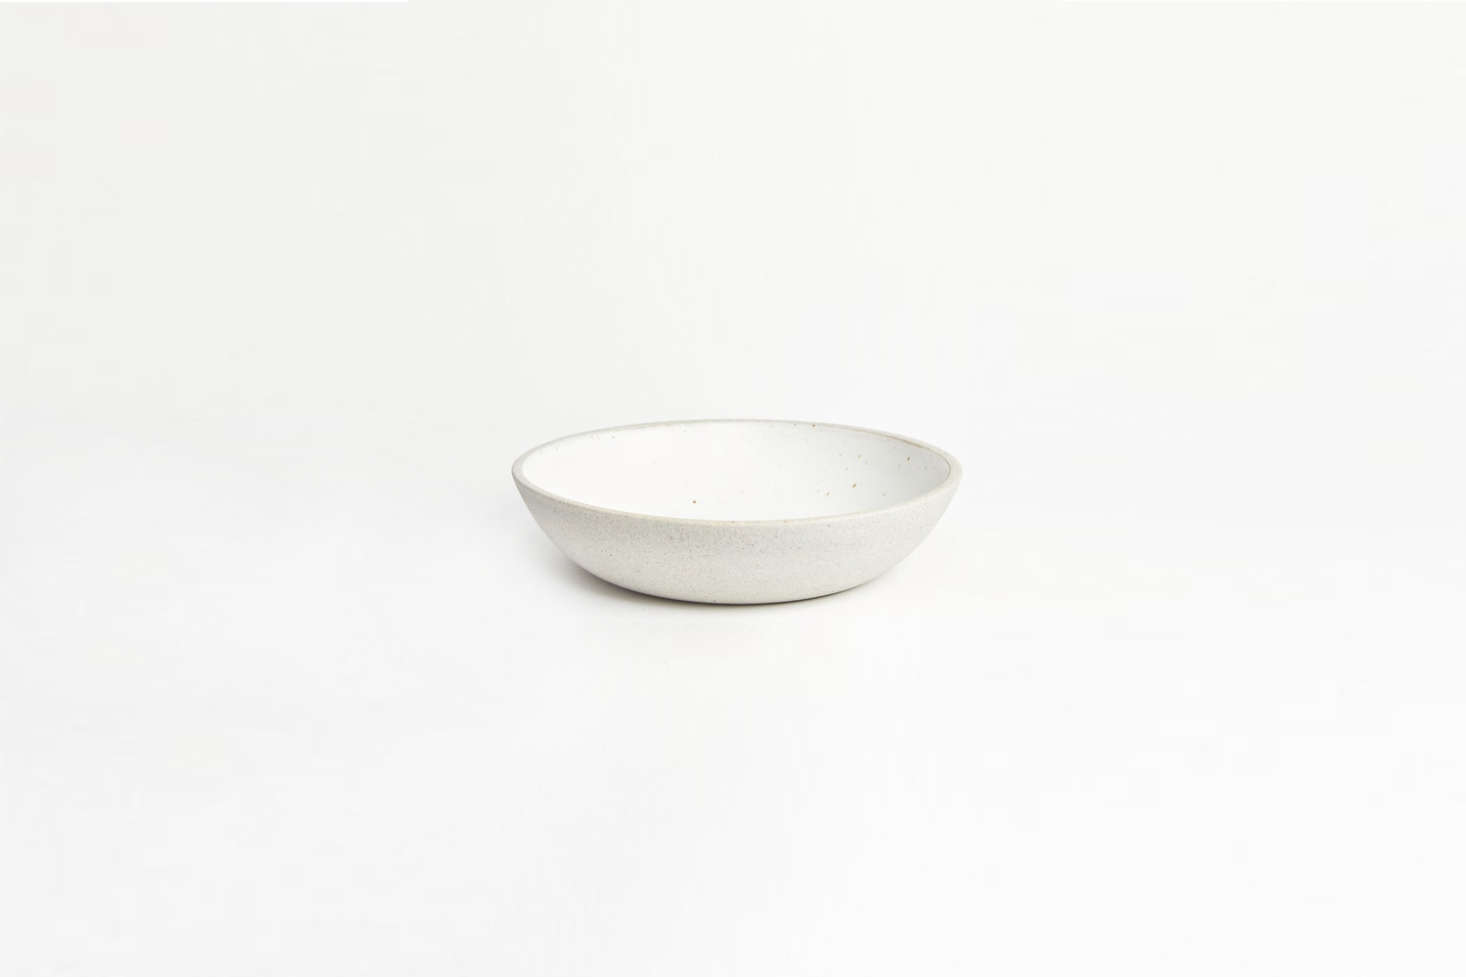 10 Easy Pieces: Hippie Bowls for Bowl Food - Remodelista